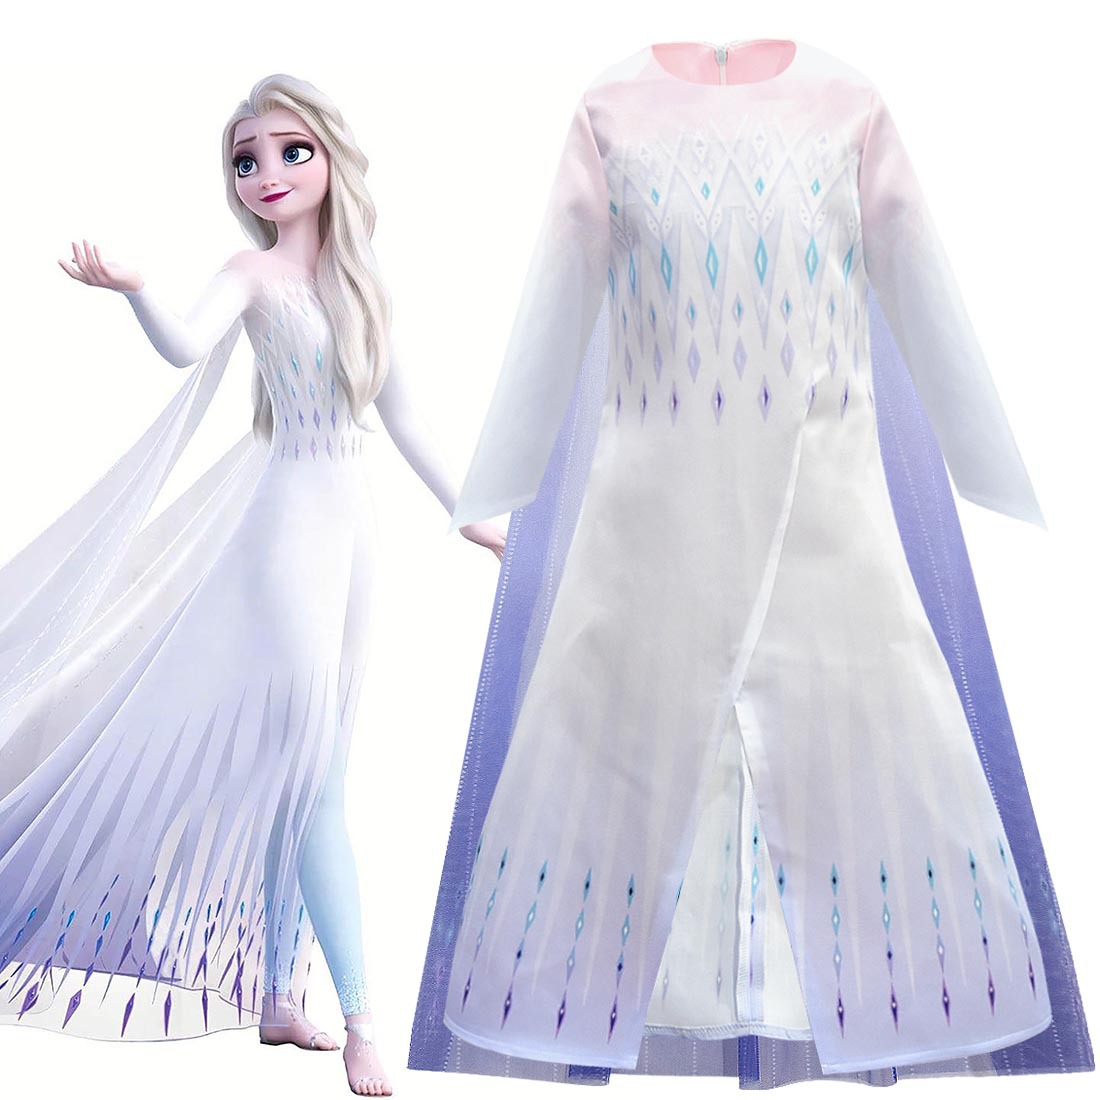 <font><b>Frozen</b></font> <font><b>2</b></font> <font><b>Anna</b></font> Elsa <font><b>2</b></font> Princess Costumes Cosplay For Kids Princess Dresses for Girls <font><b>Wig</b></font>/Crown Vestidos Children Girls Elsa Dress image